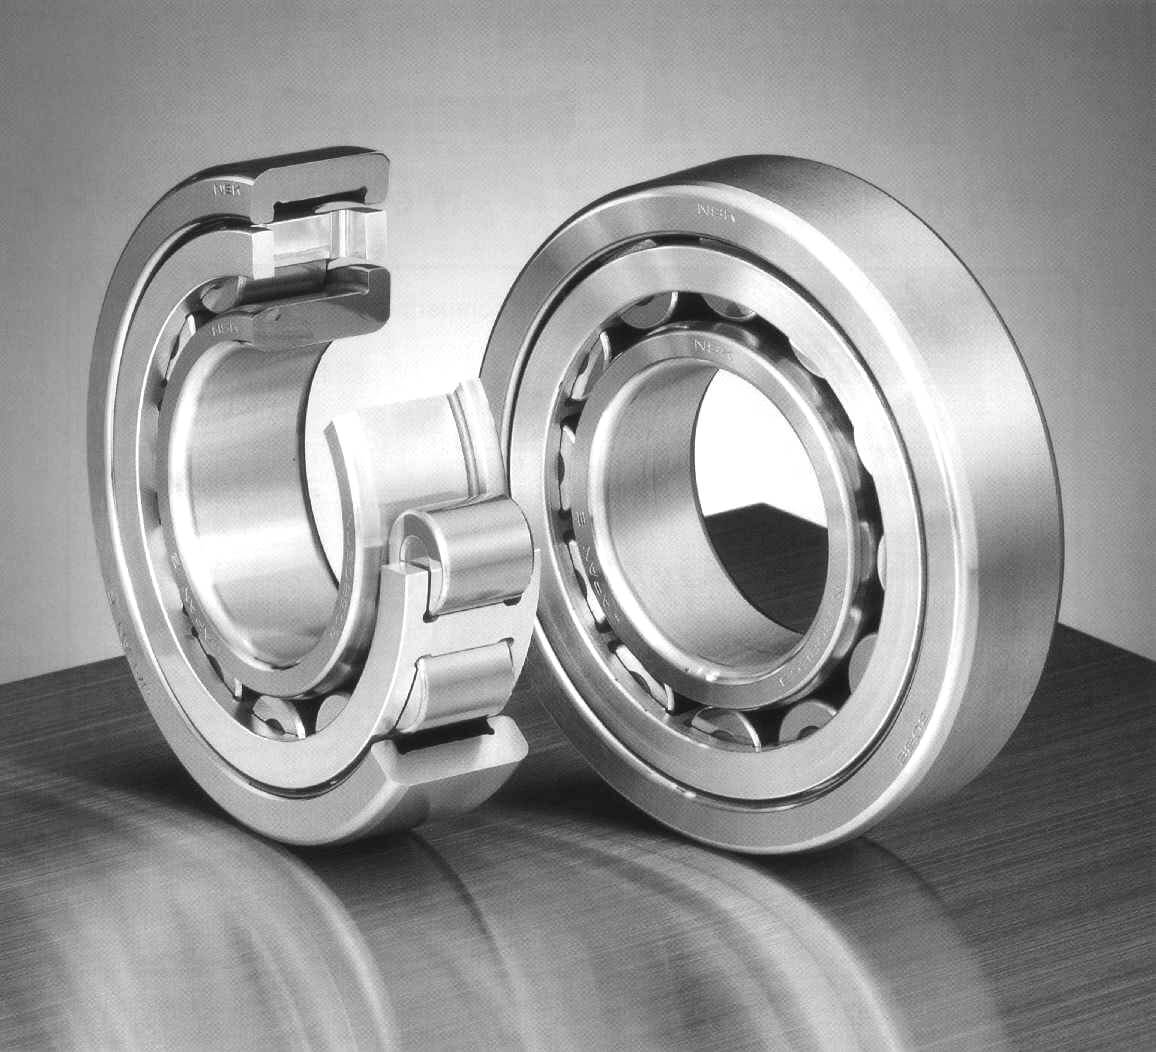 How to avoid buying counterfeit bearings